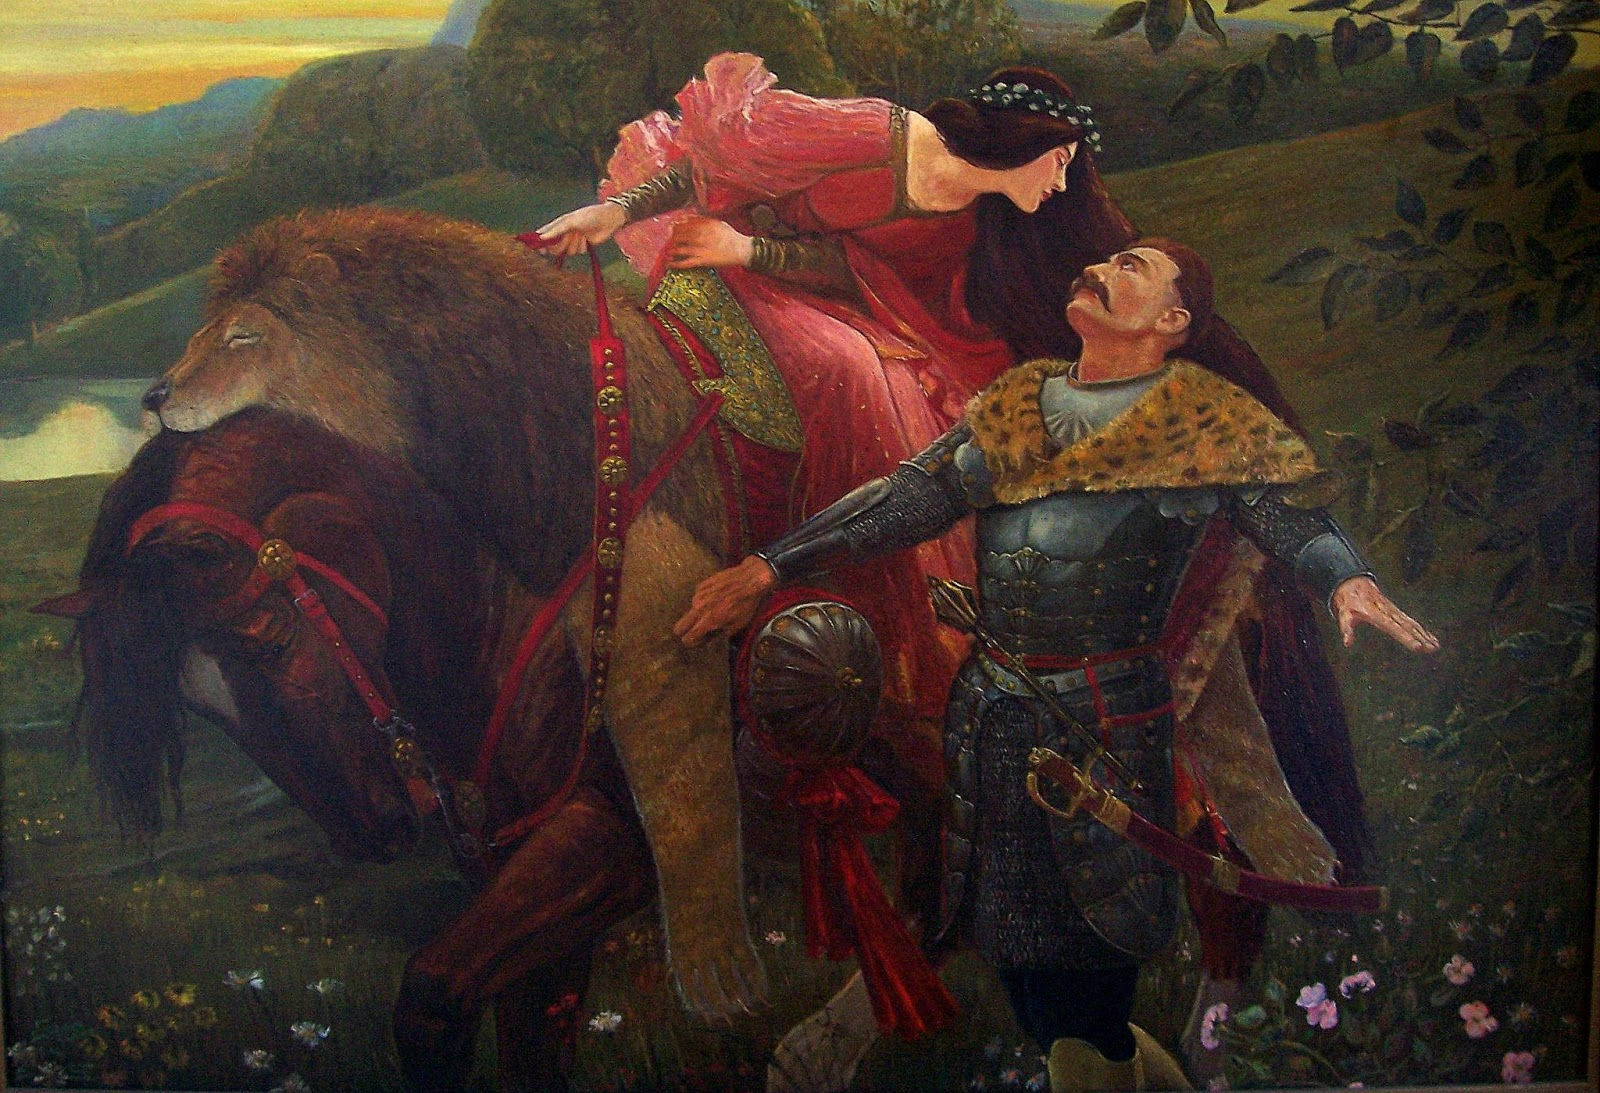 la belle dame sans merci annotations La belle dame sans merci ballad there are two versions of this very famous ballad the first version is from the original manuscript and the second version is its first published form.